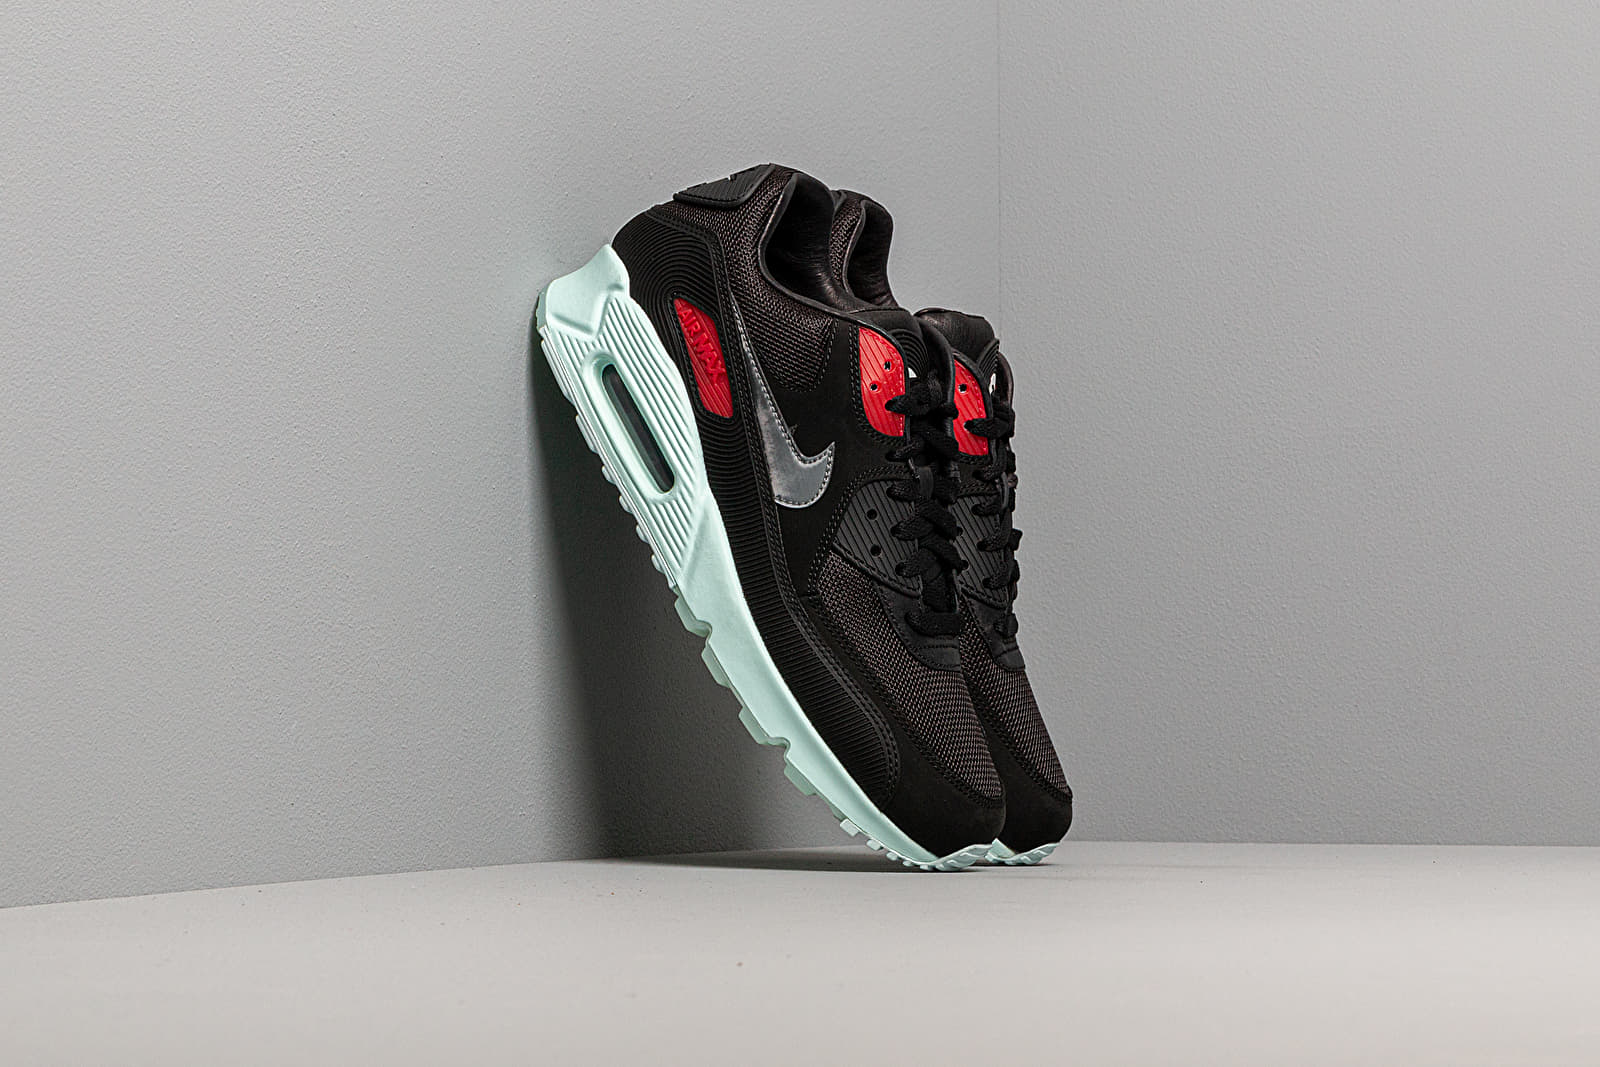 Nike Air Max 90 Premium Black Cool Grey Teal Tint University Red | Footshop